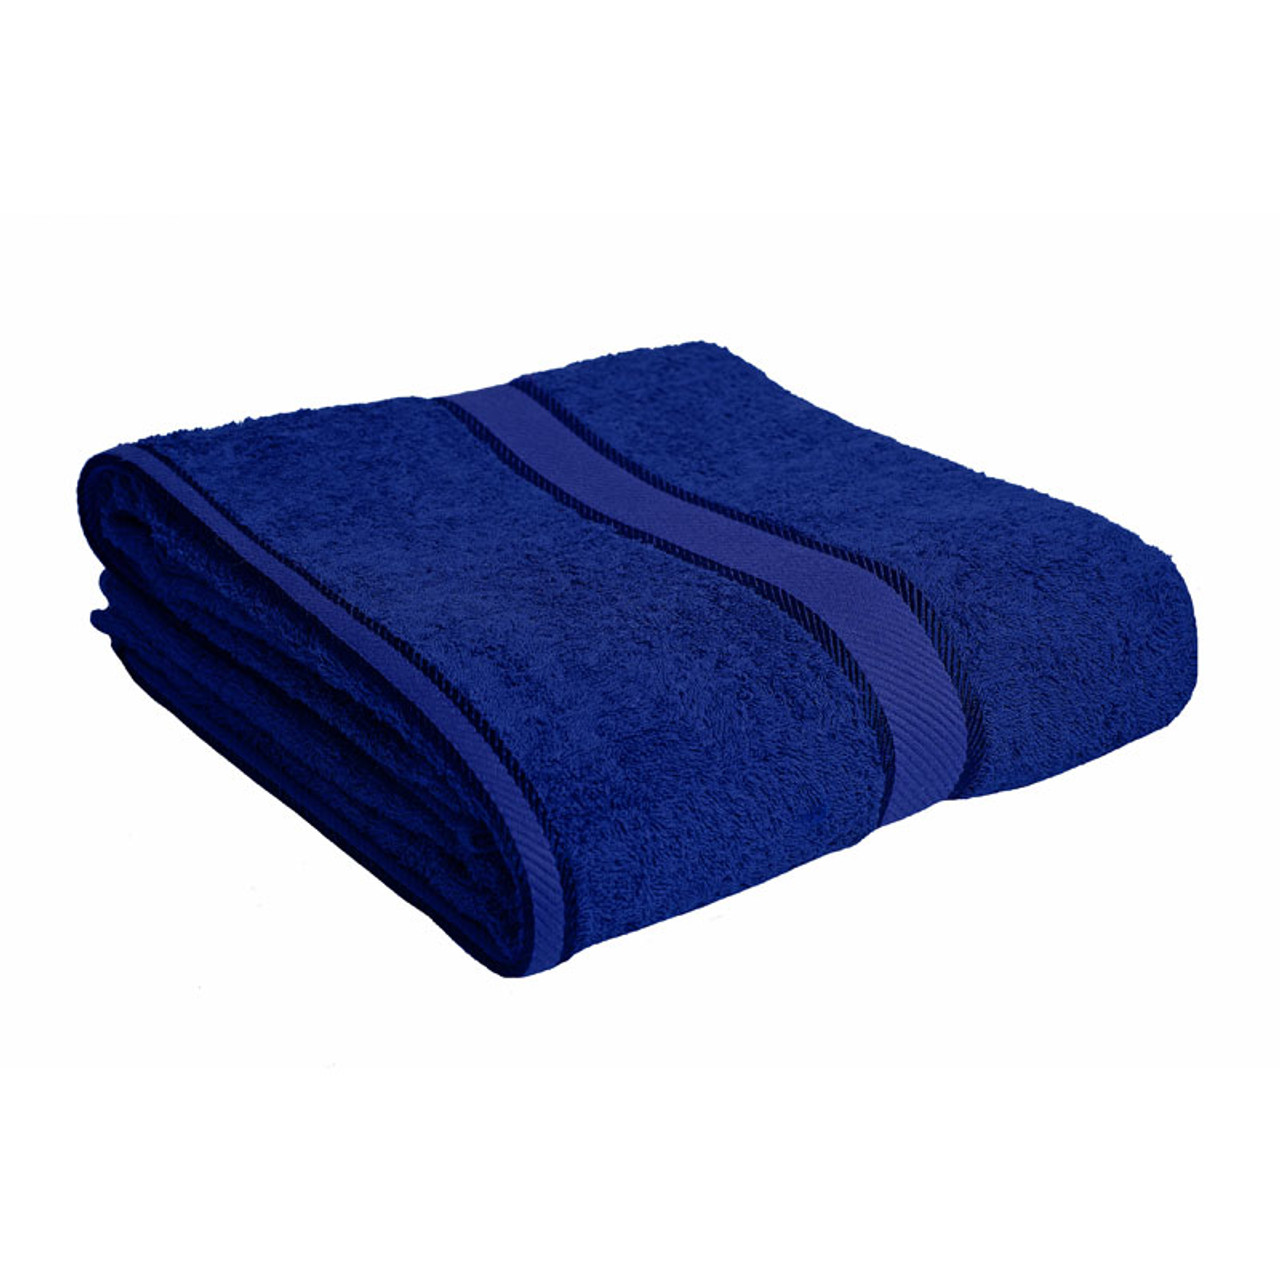 100 Cotton Royal Blue Towels Bath Sheet Kingtex